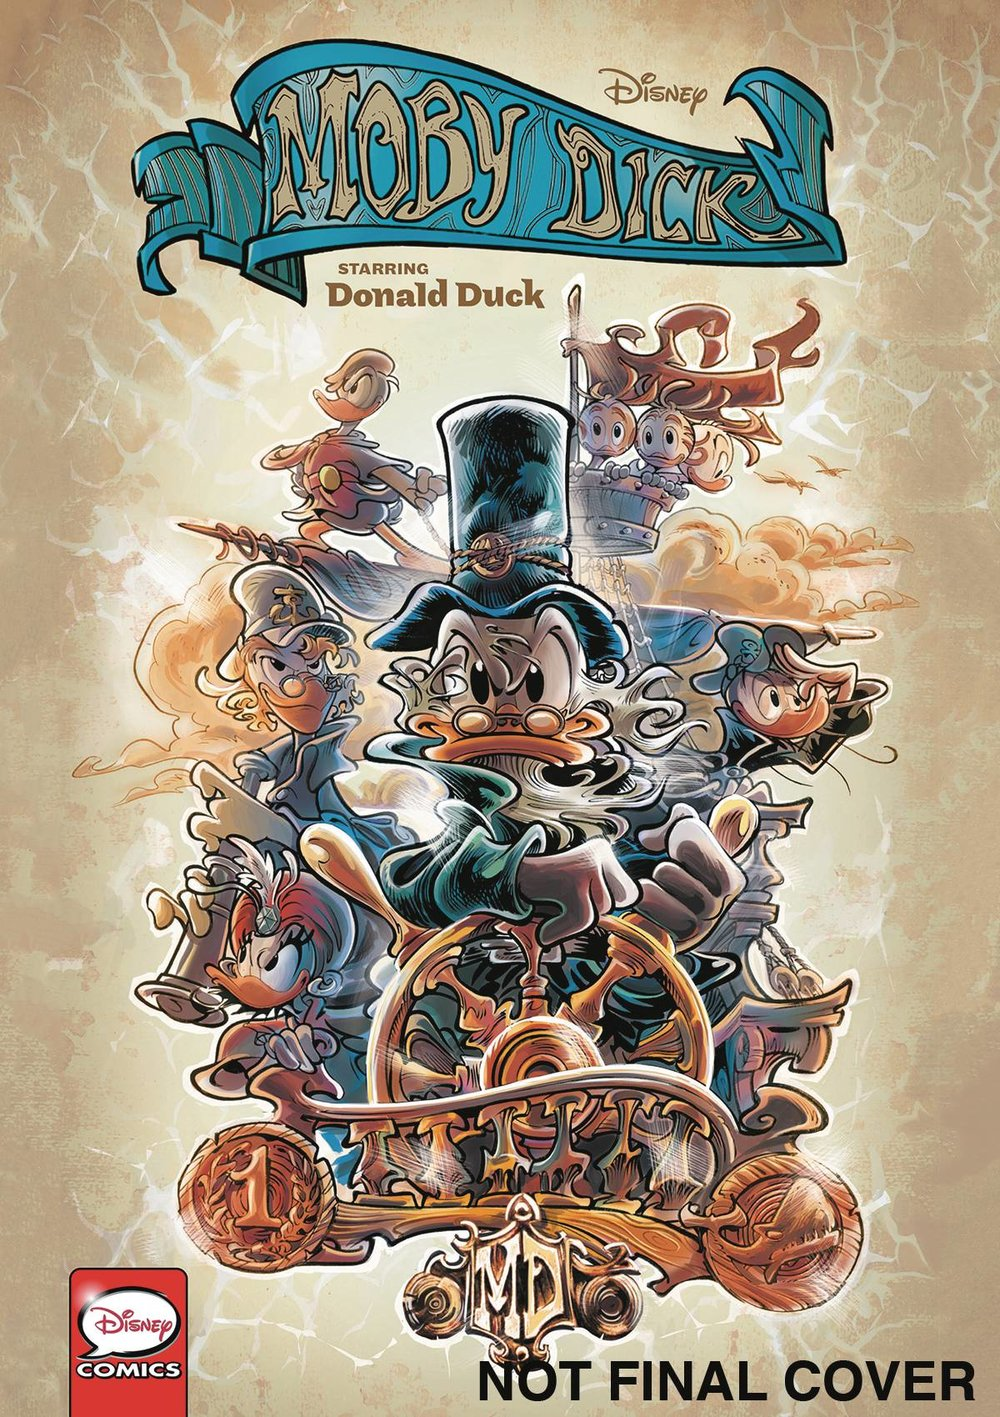 DISNEY CLASSICS MOBY DICK STARRING DONALD DUCK.jpg